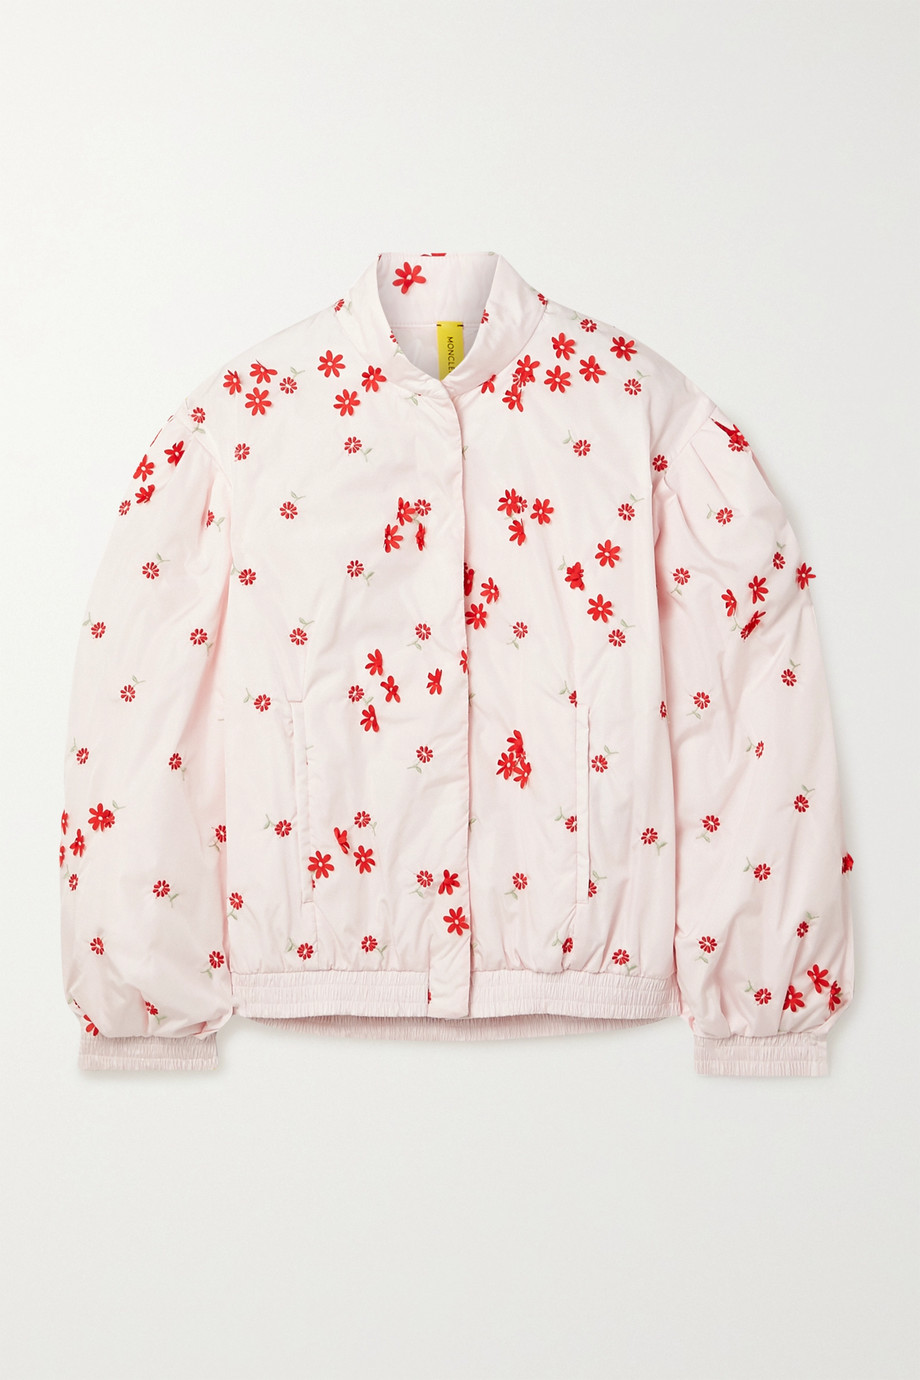 Moncler Genius + 4 Simone Rocha Persea appliquéd embroidered shell down bomber jacket